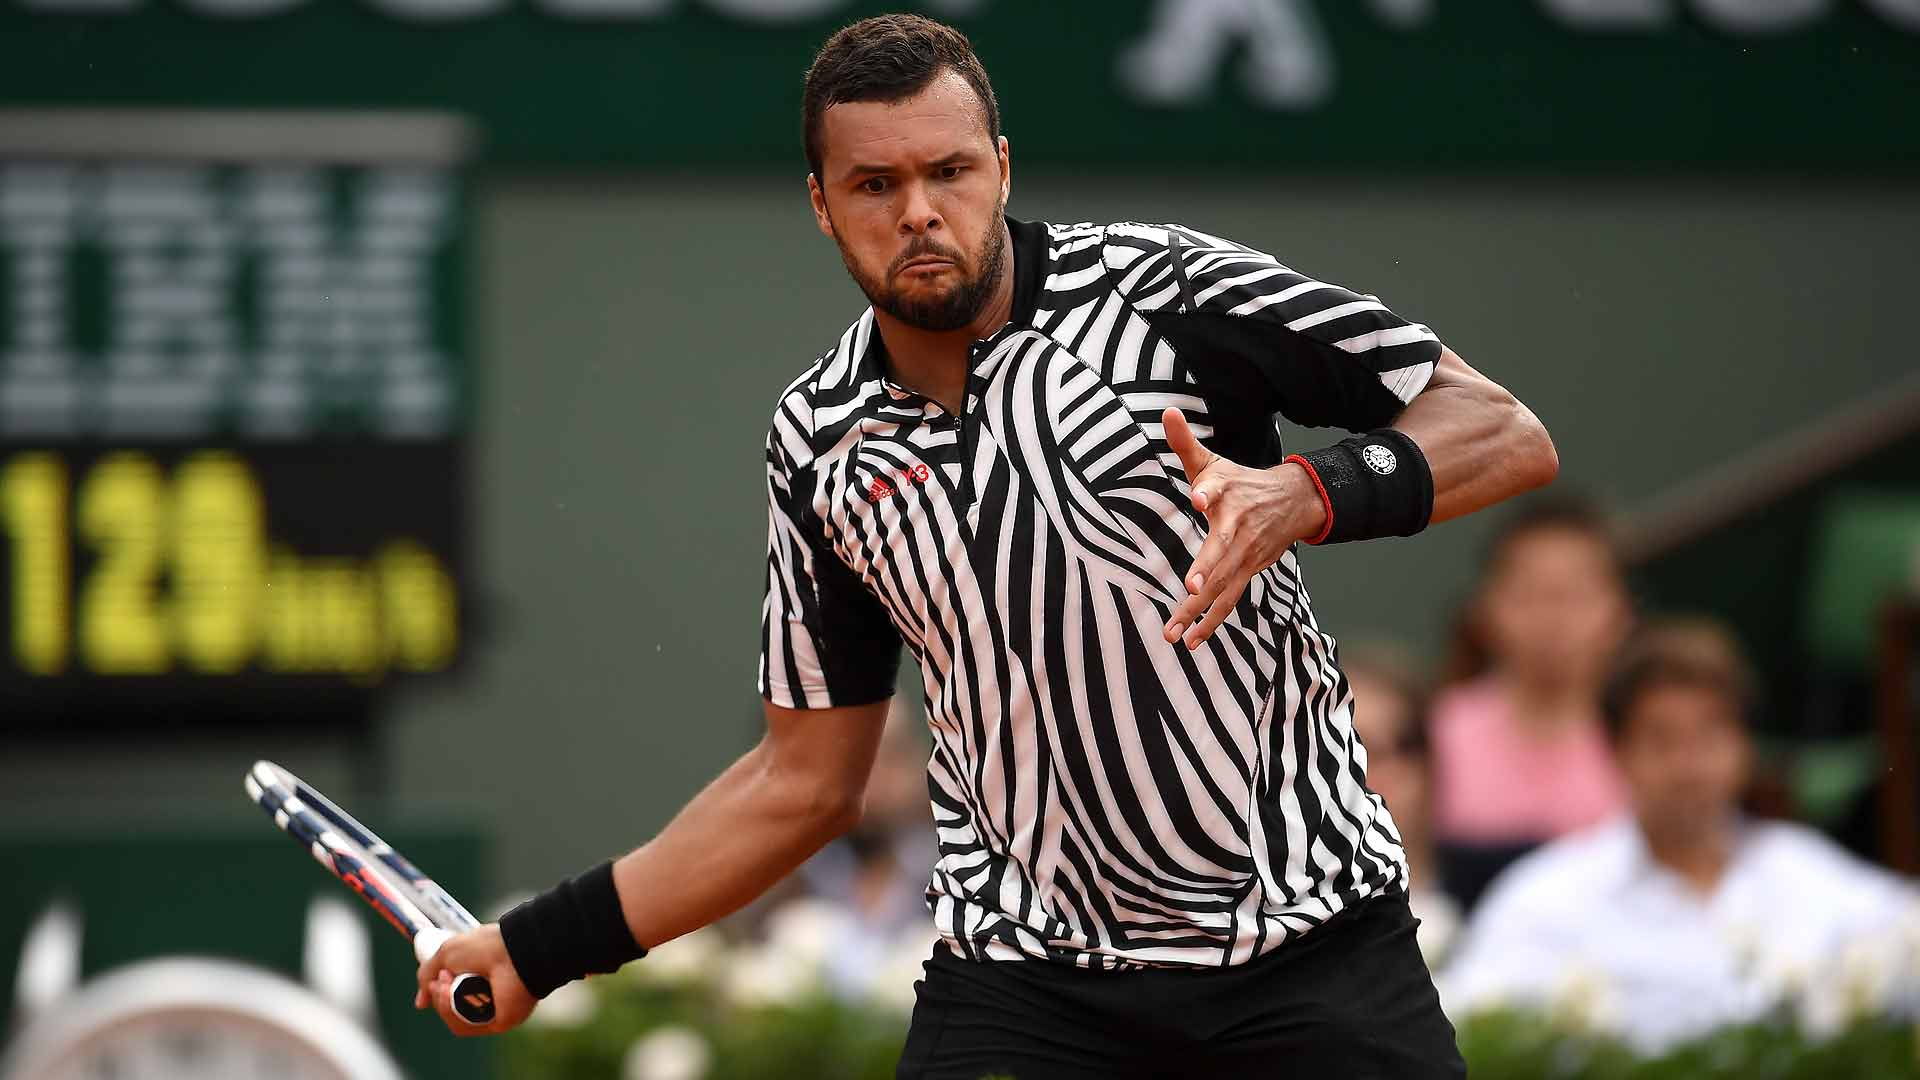 Jo-Wilfried Tsonga survives a marathon match on Thursday at Roland Garros.